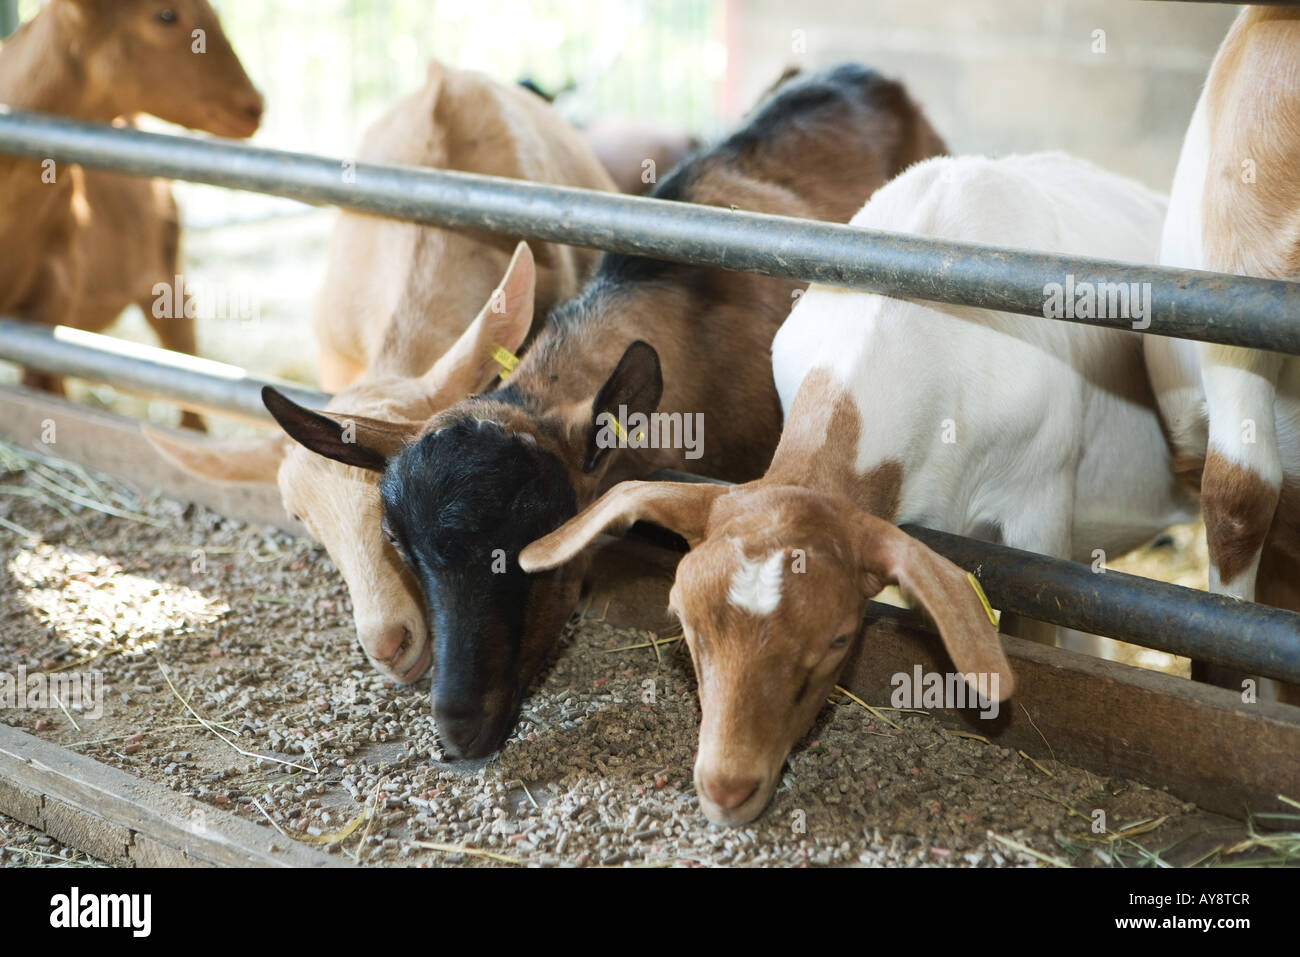 Goats reaching through railing, eating out of trough - Stock Image